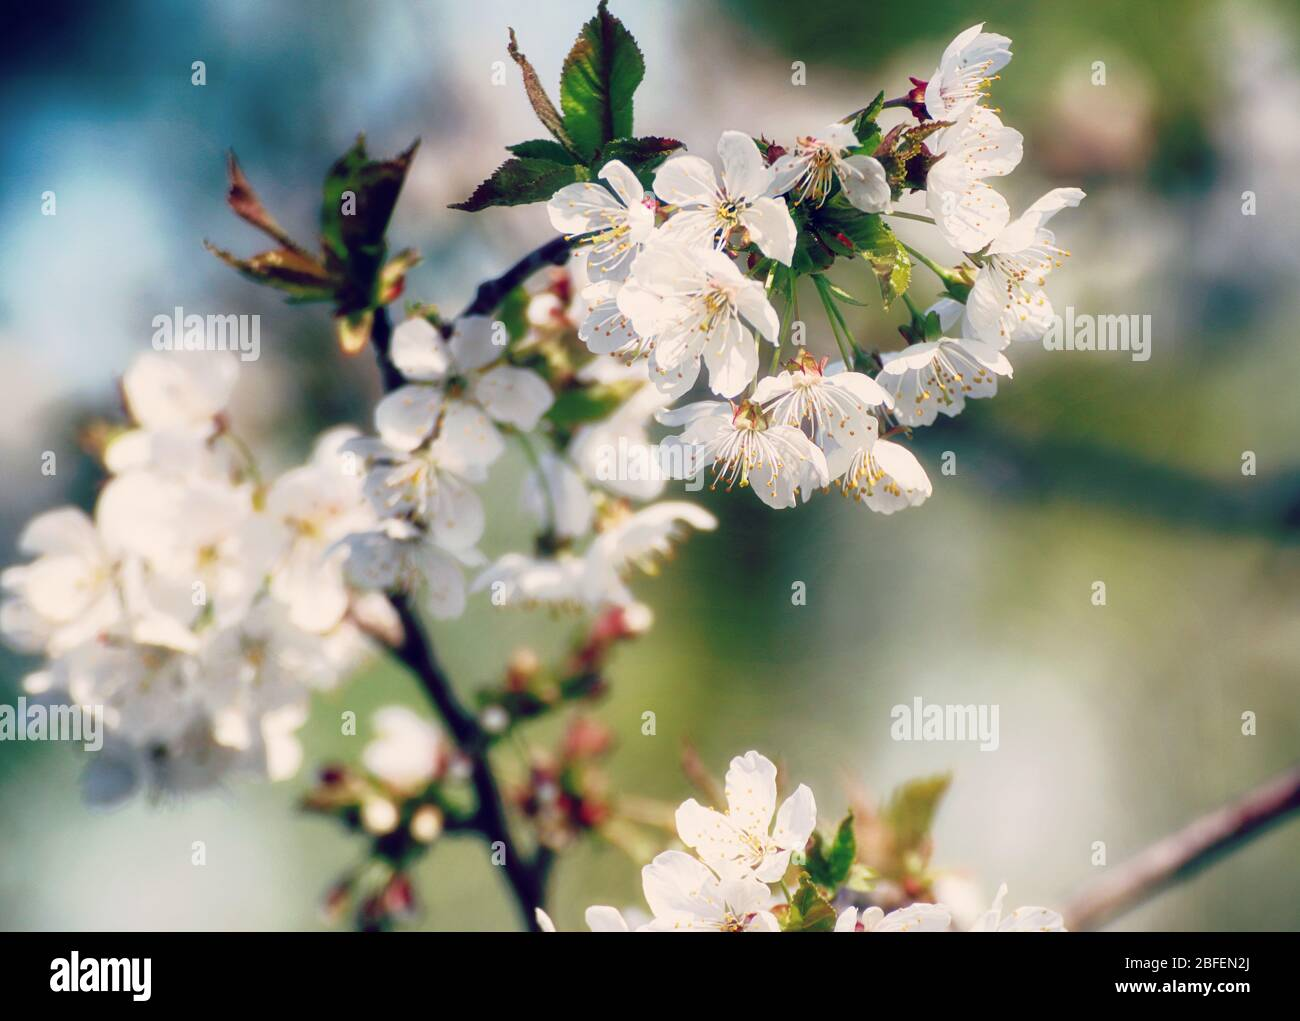 Spring in Bayern, April brings white blossoms on the apple trees against the blue sky, close up, soft focus Stock Photo